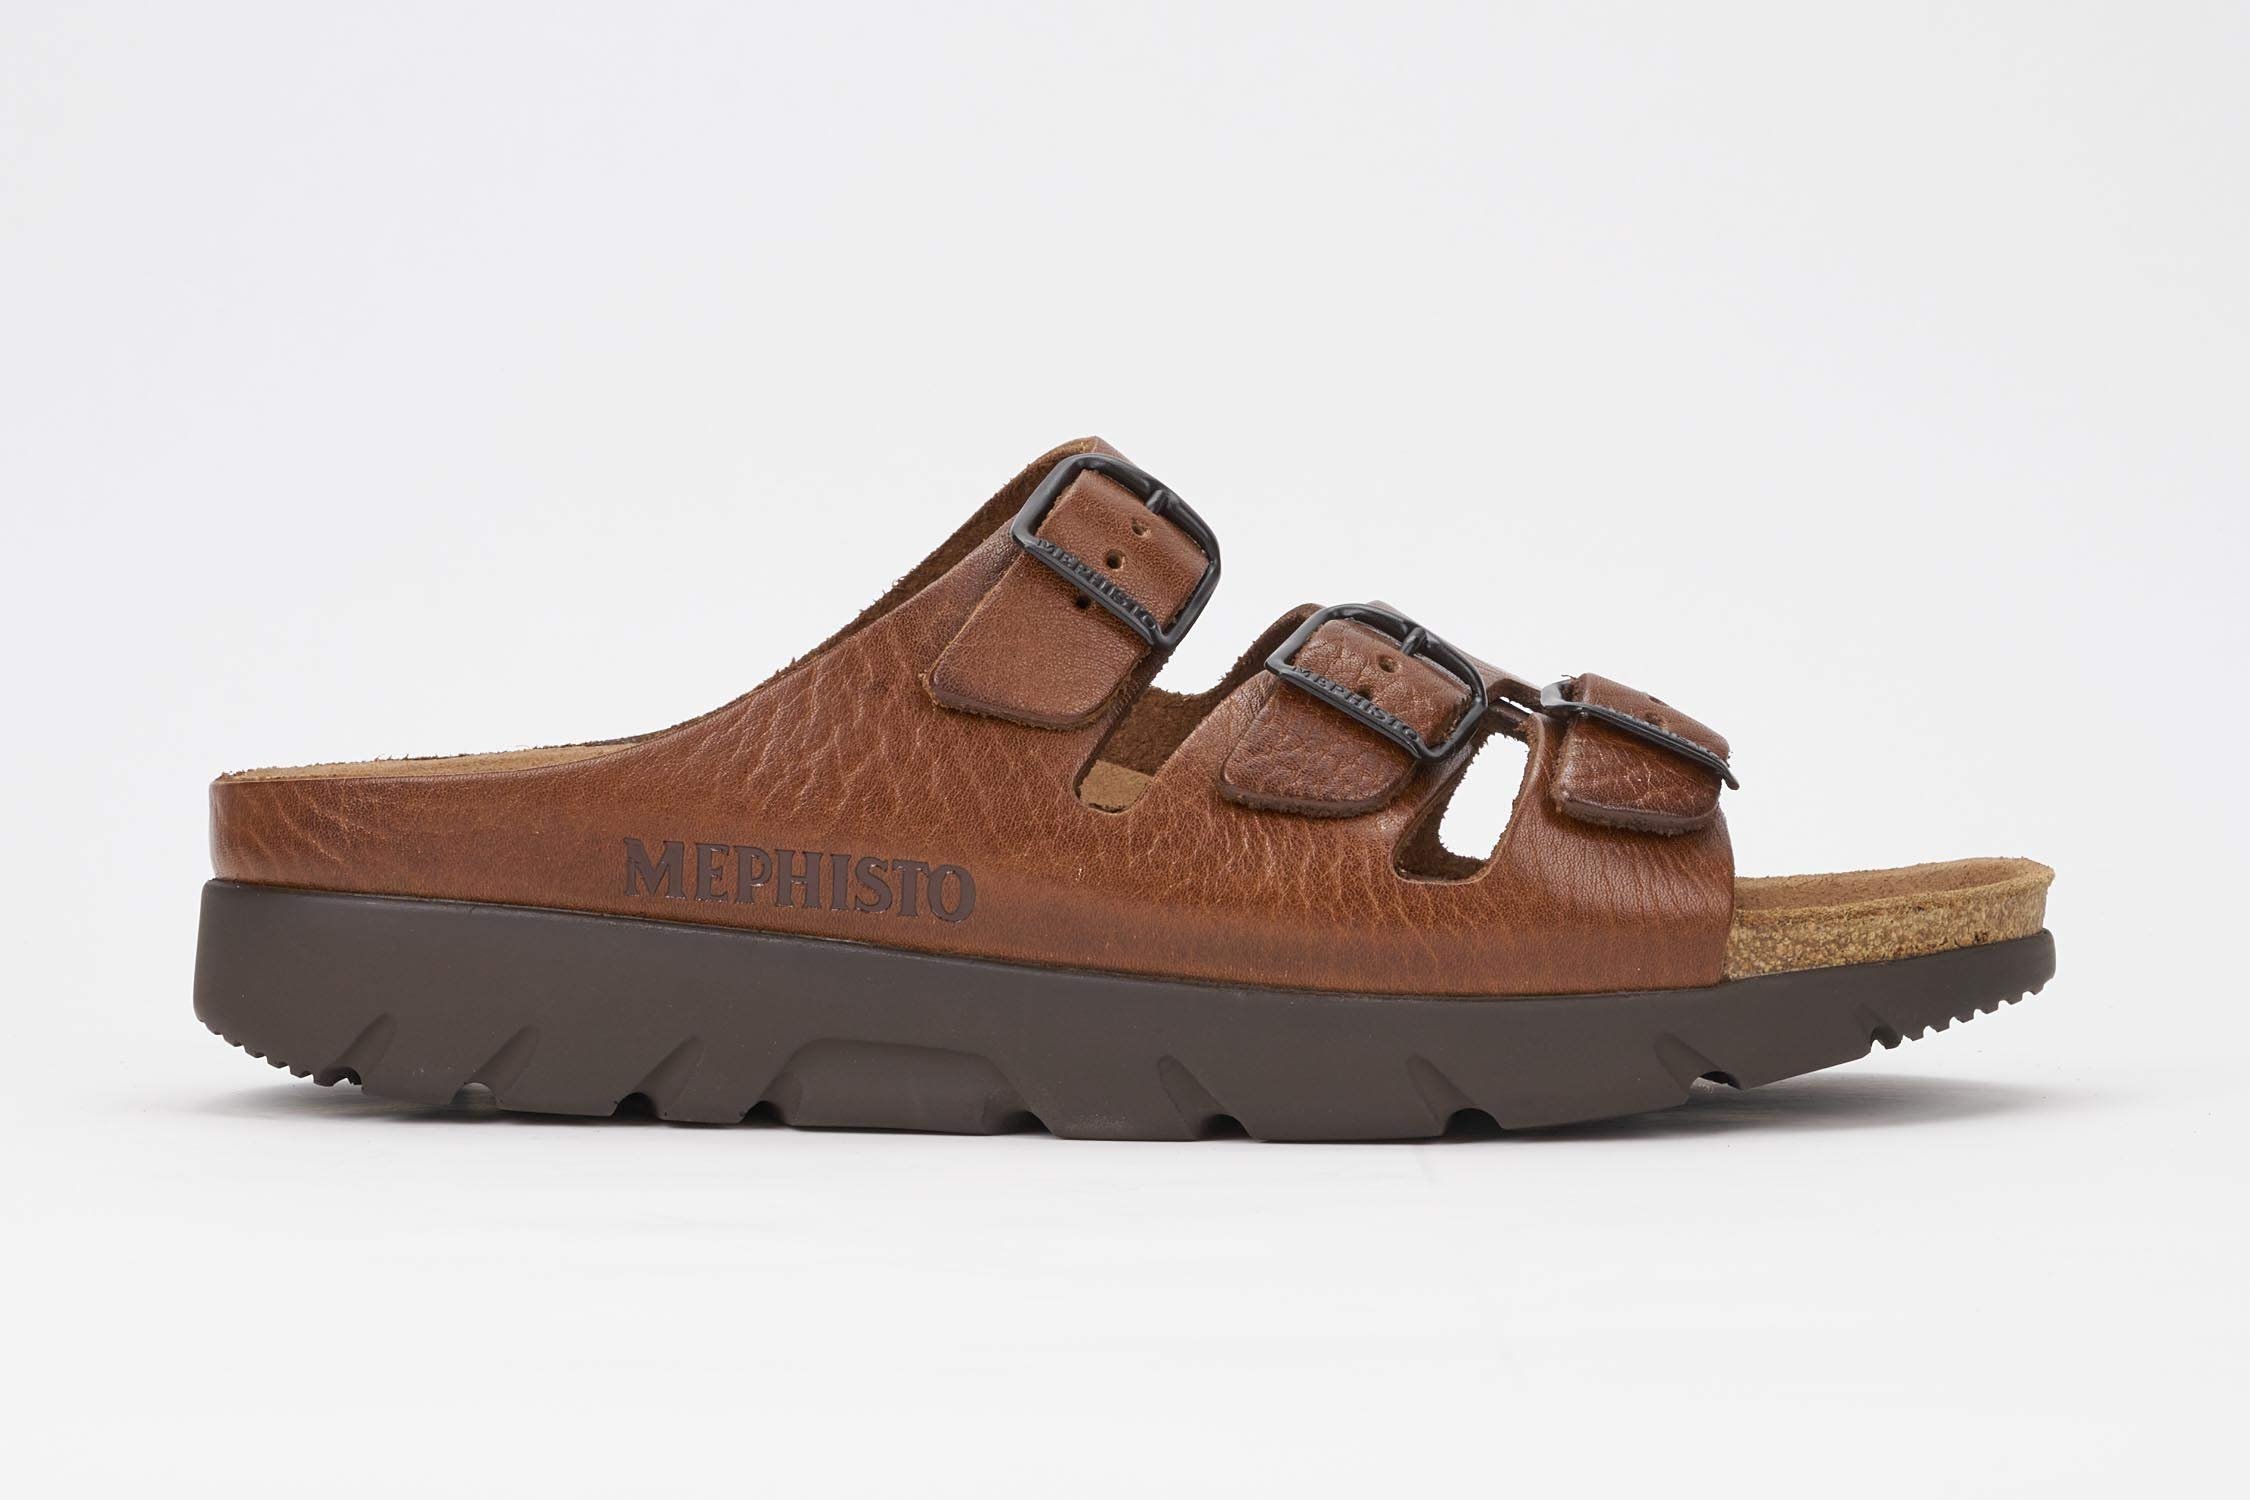 Mephisto Men's Zach Sandals Tan Grain Leather 12 M US